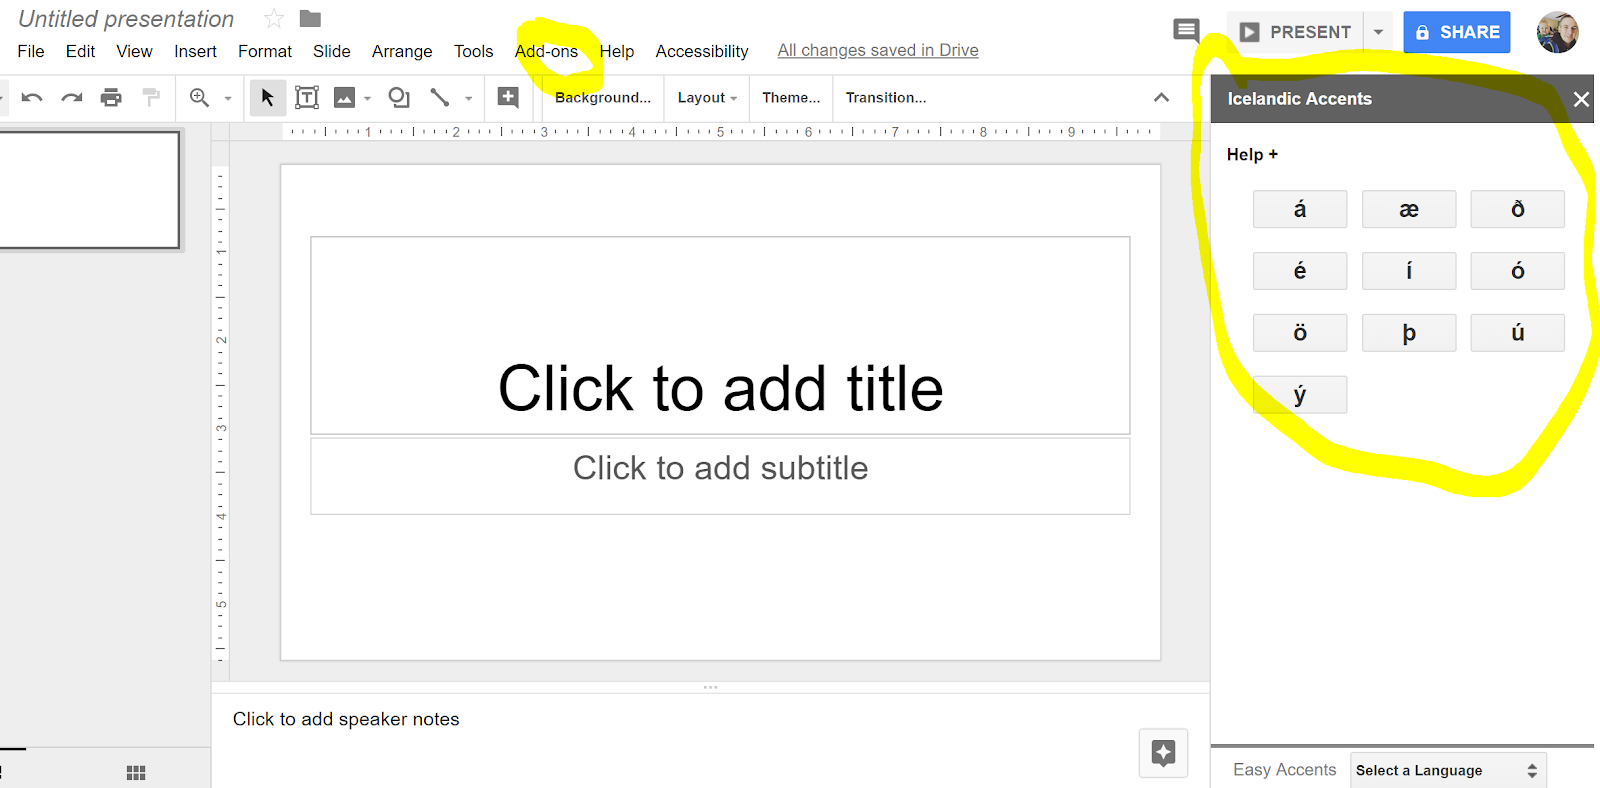 easy accents for google slides todoele 2 0